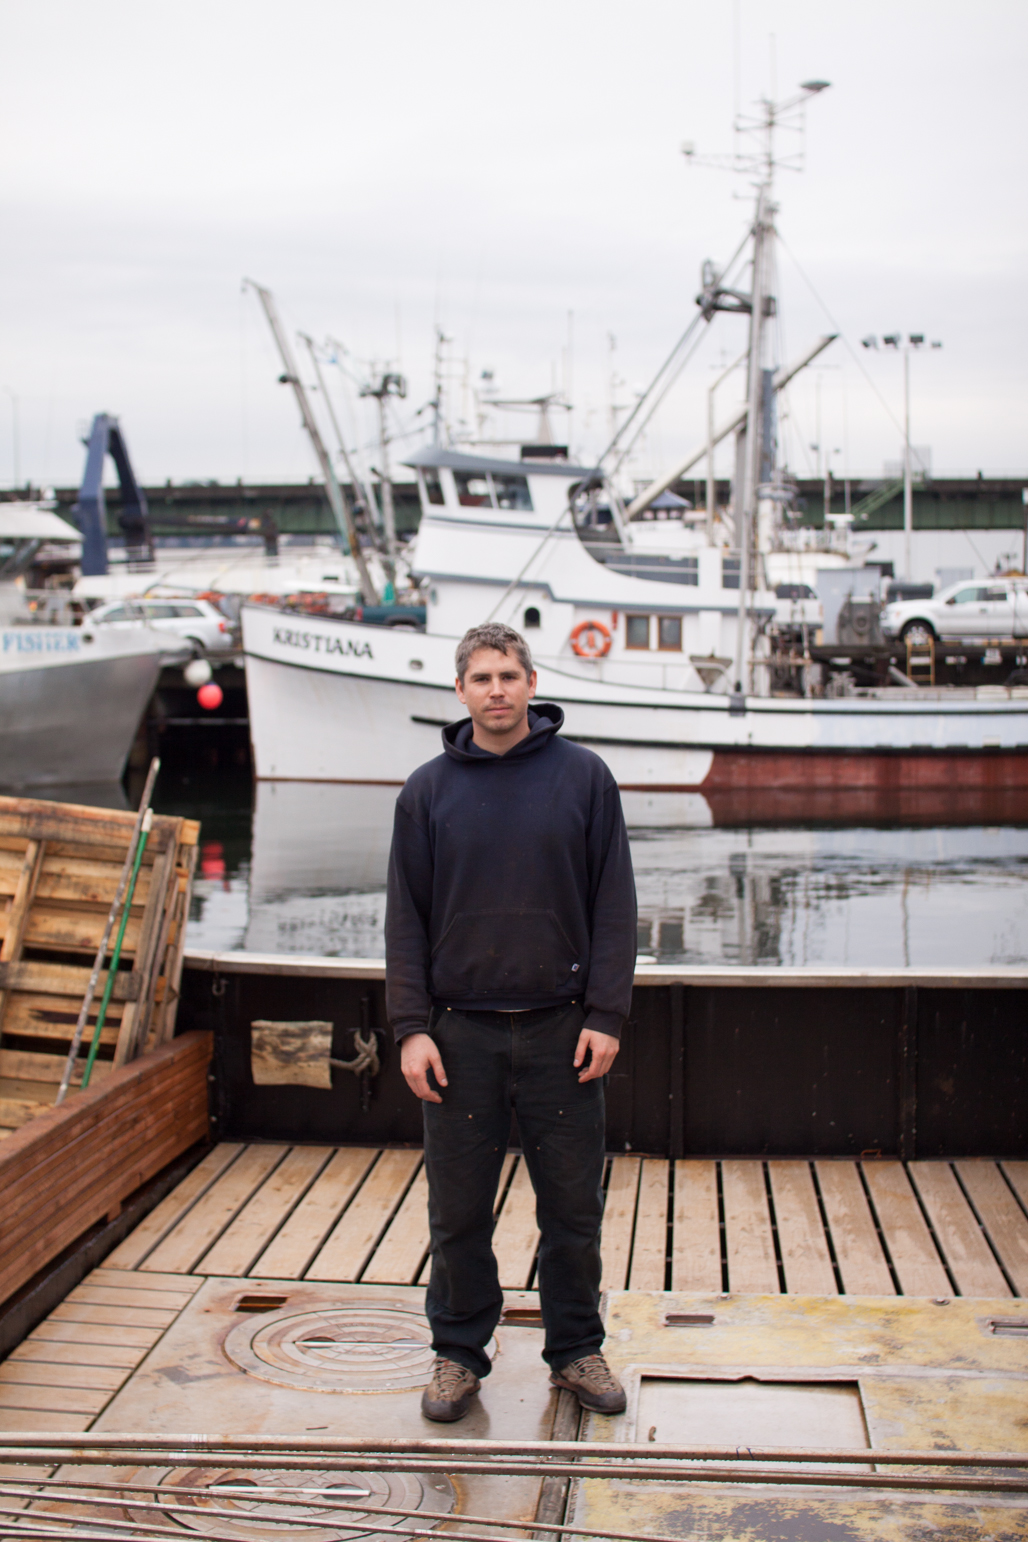 Sean, a crew member on a southeastern Alaskan salmon seiner, aboard his vessel in Fishermen's Terminal. A native of Seattle, Sean spends a large part of his summer in the north Pacific fishing for what many call Red Gold. Seattle Washington